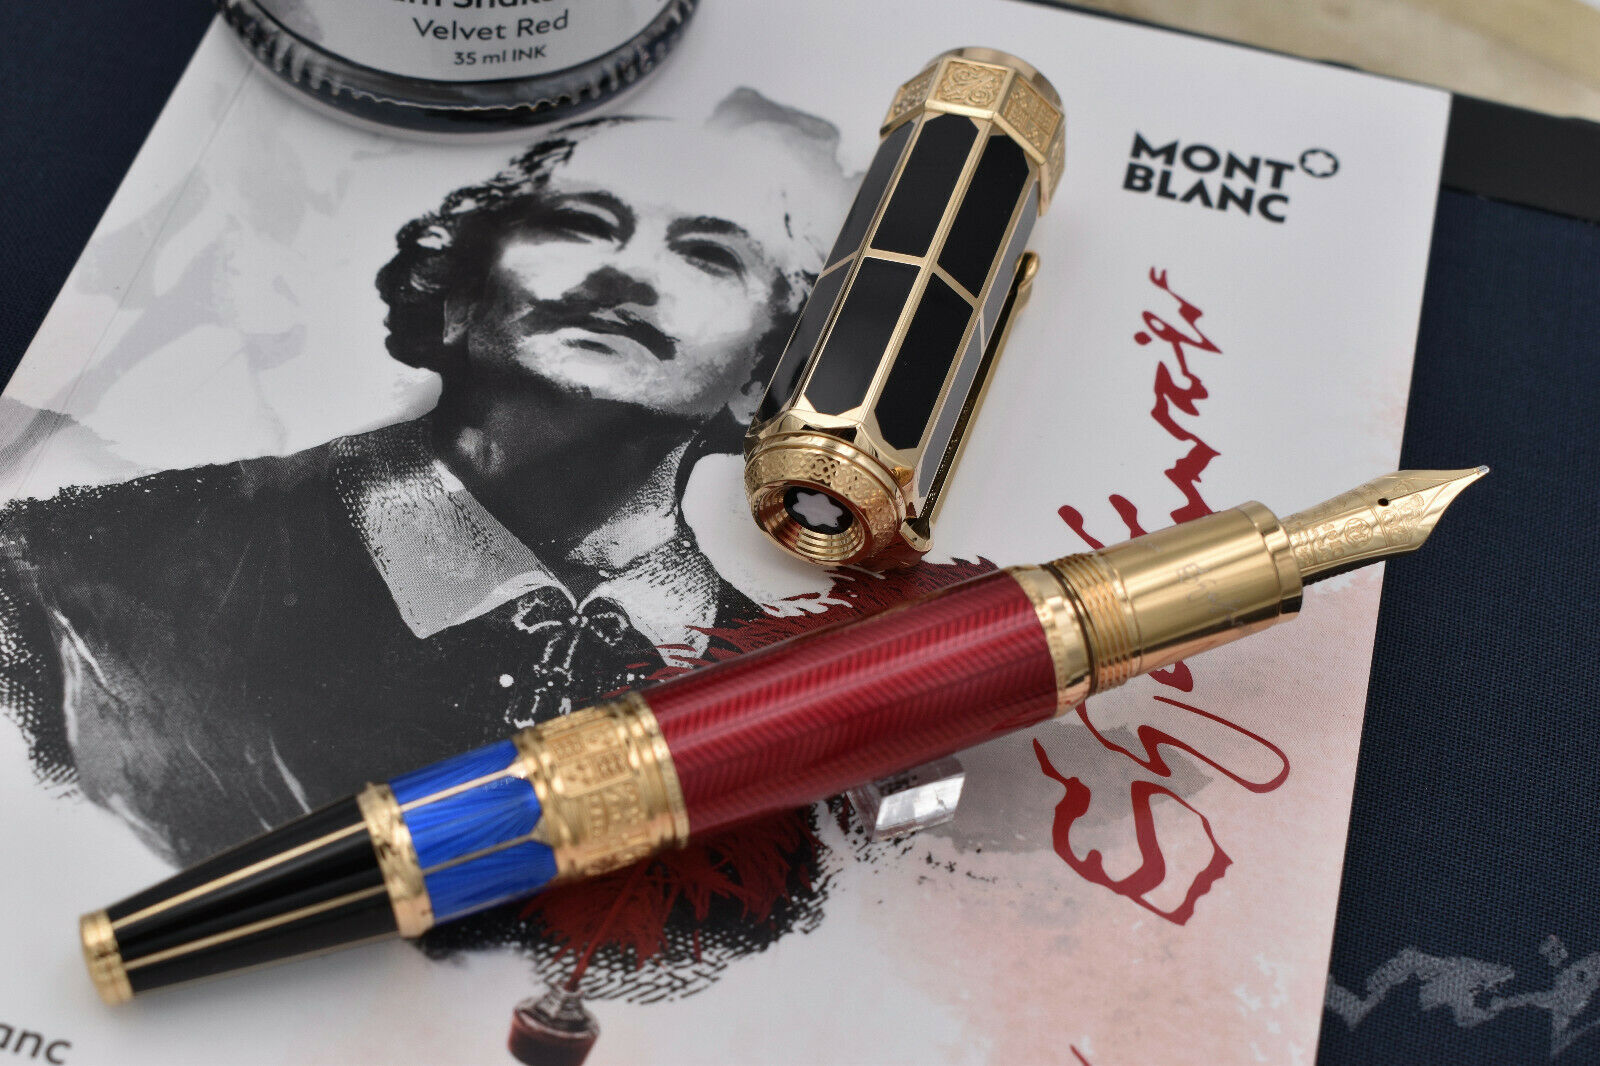 sell montblanc pen